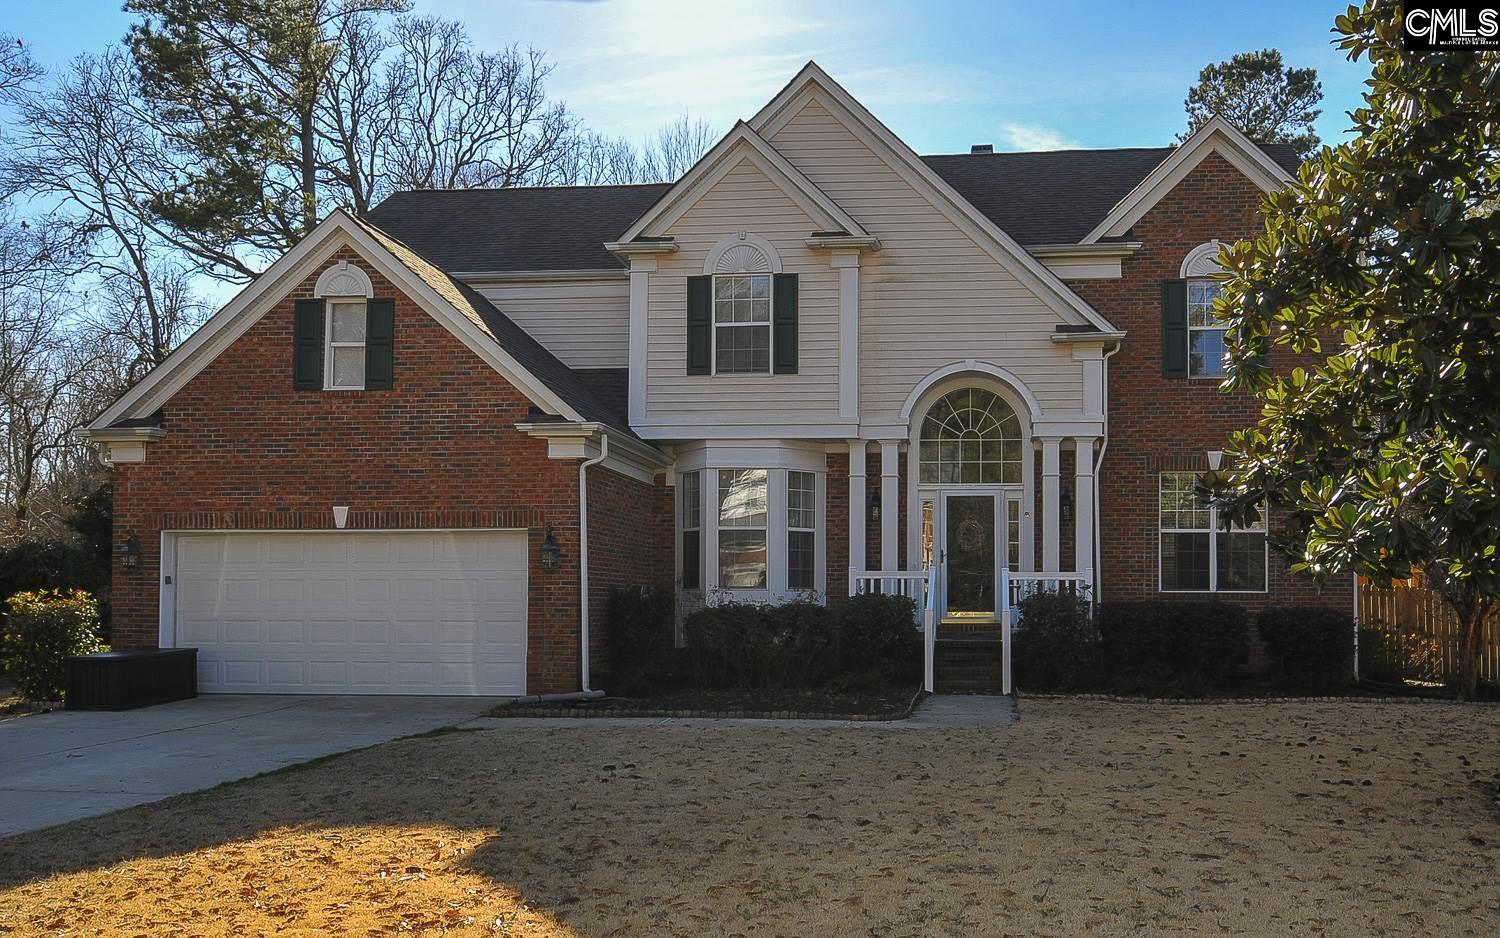 114 Hollingshed Creek Blvd Irmo, SC 29063